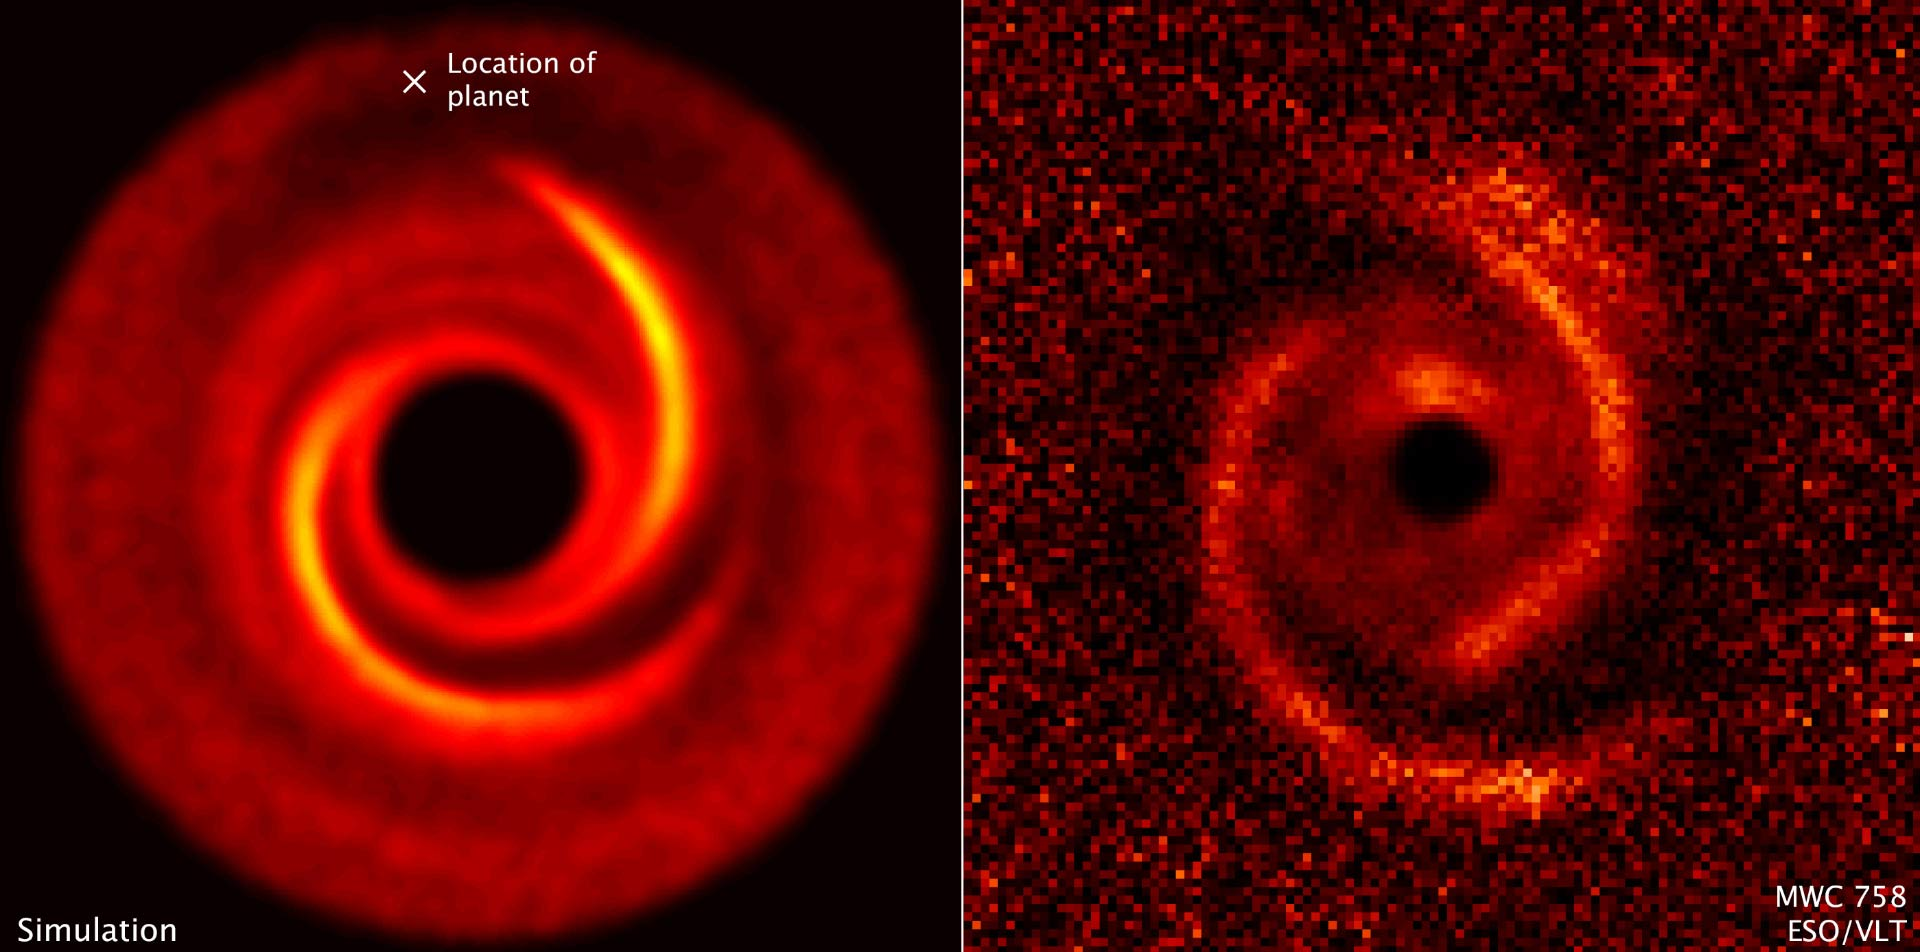 Right: observations taken by the ESO's Very Large Telescope show a  protoplanetary disk around the